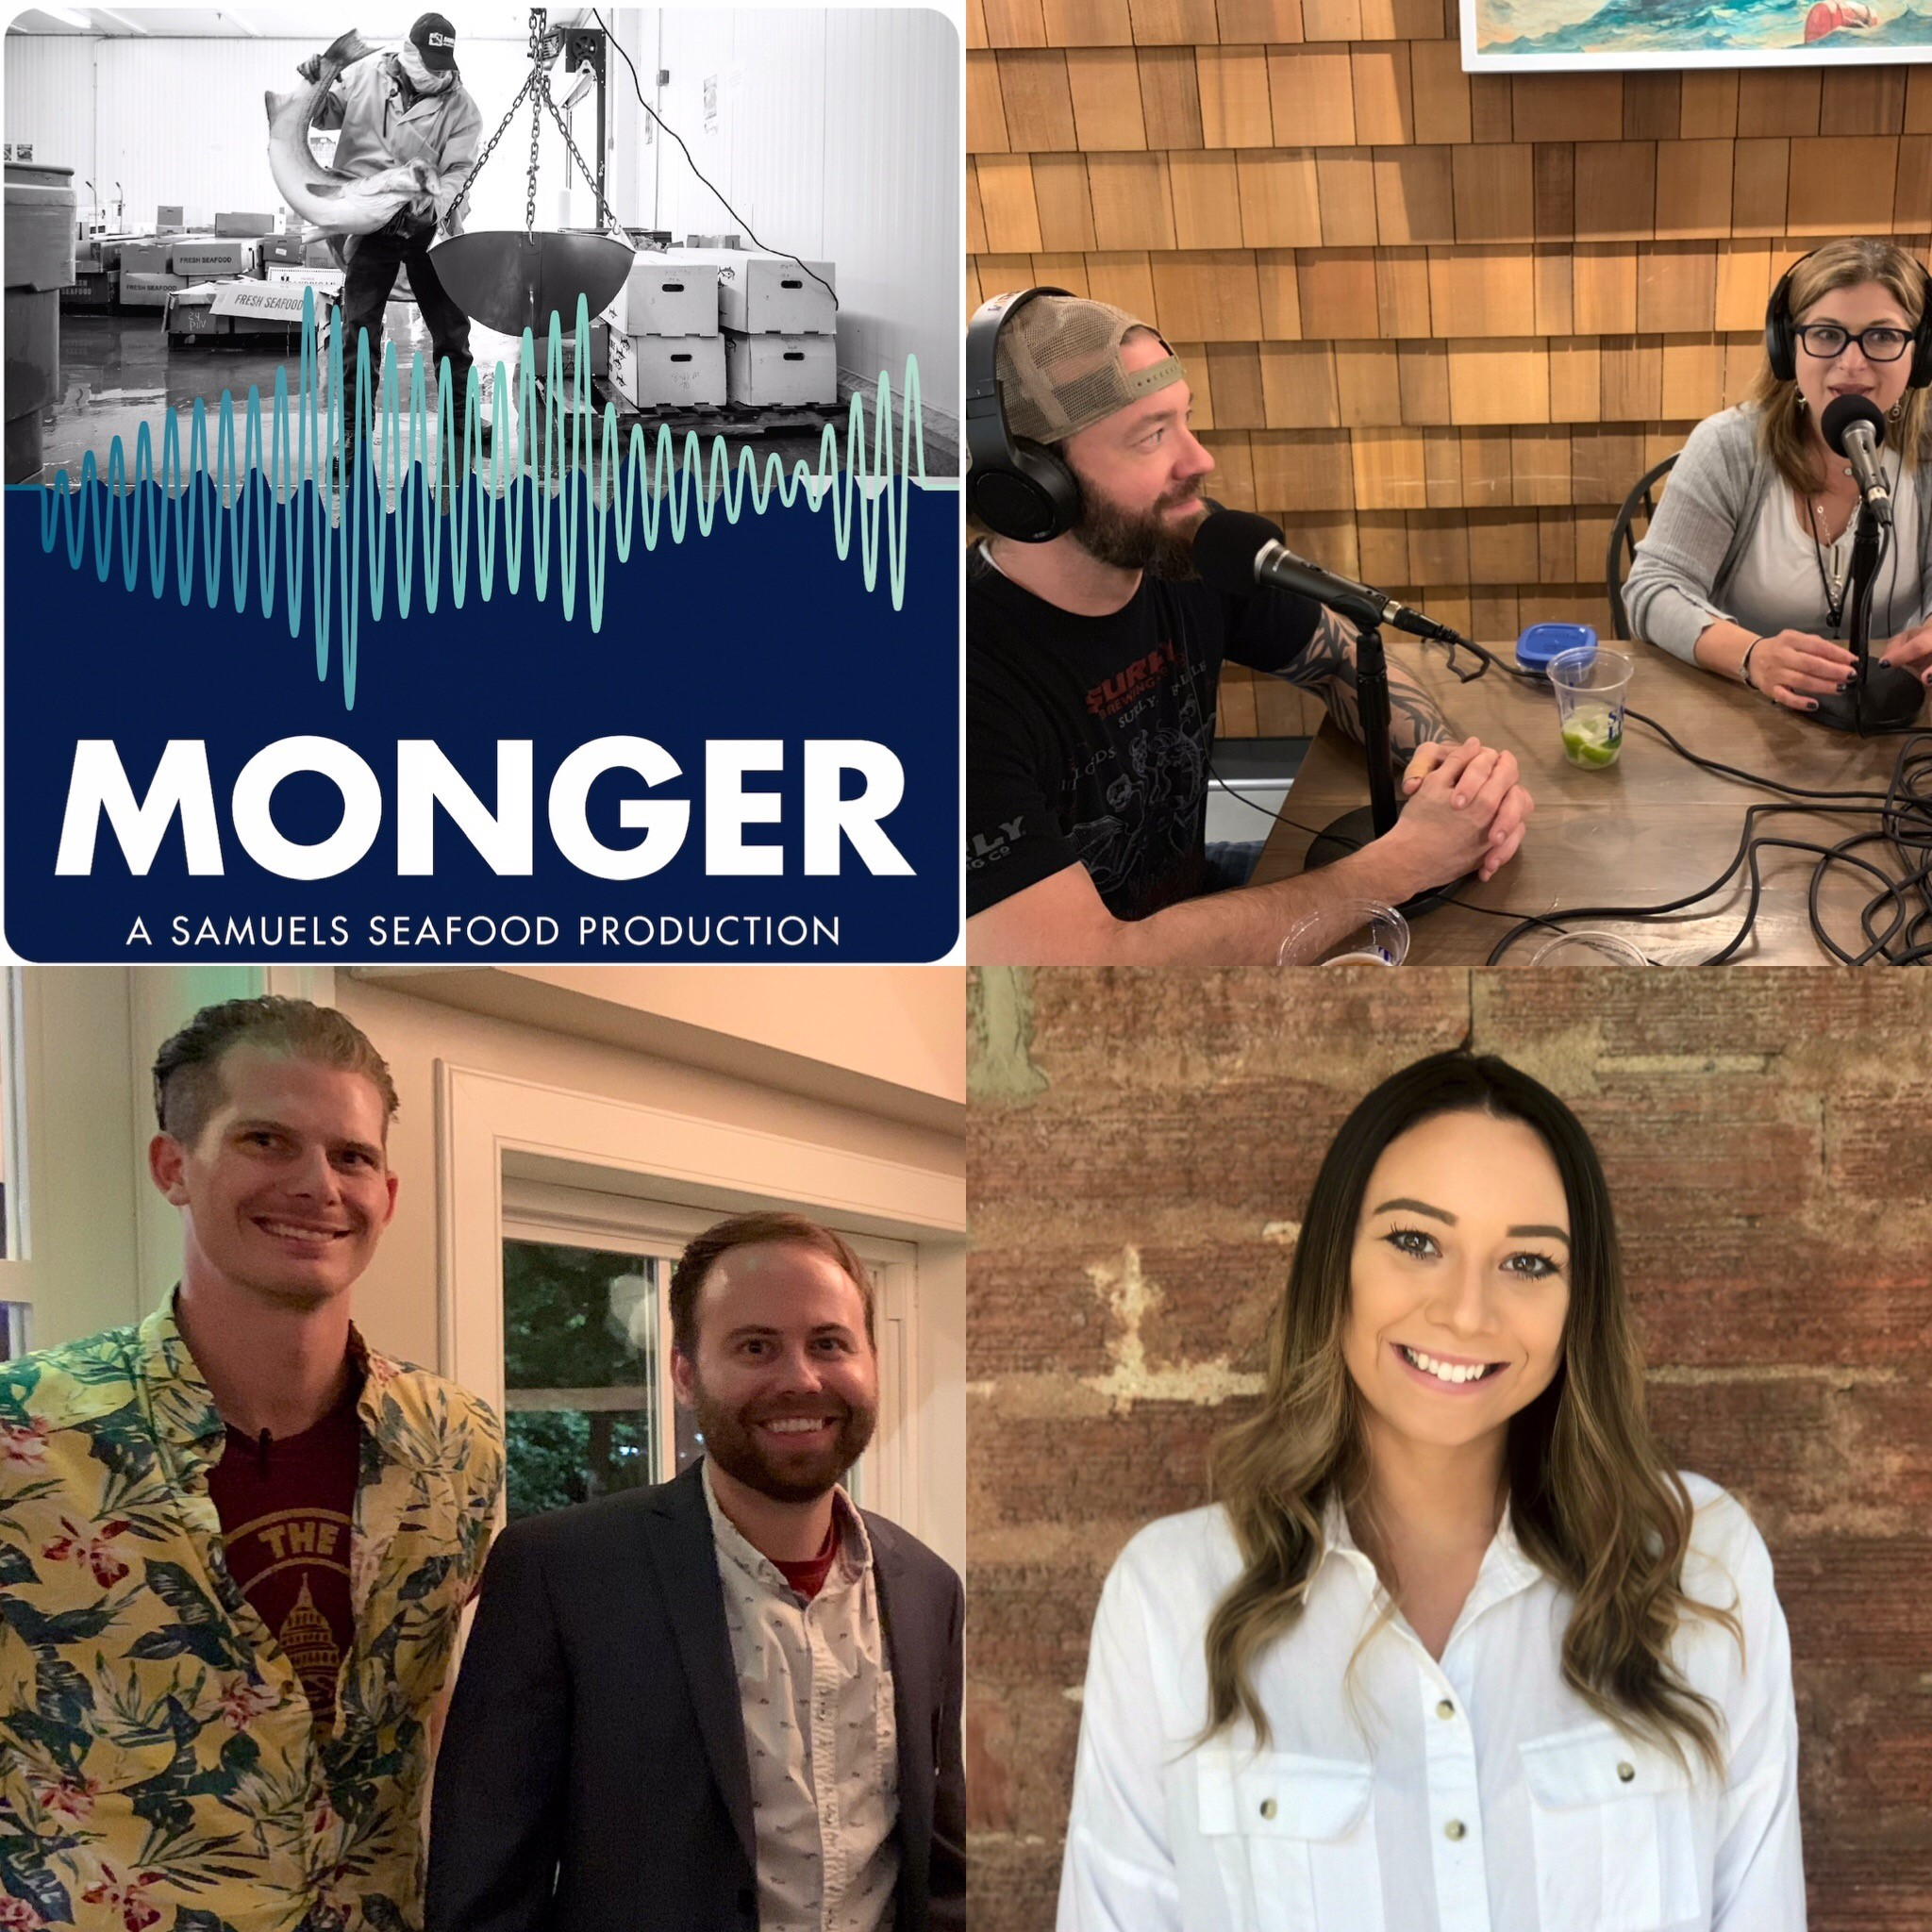 Check Out This Week's Episode of Monger!